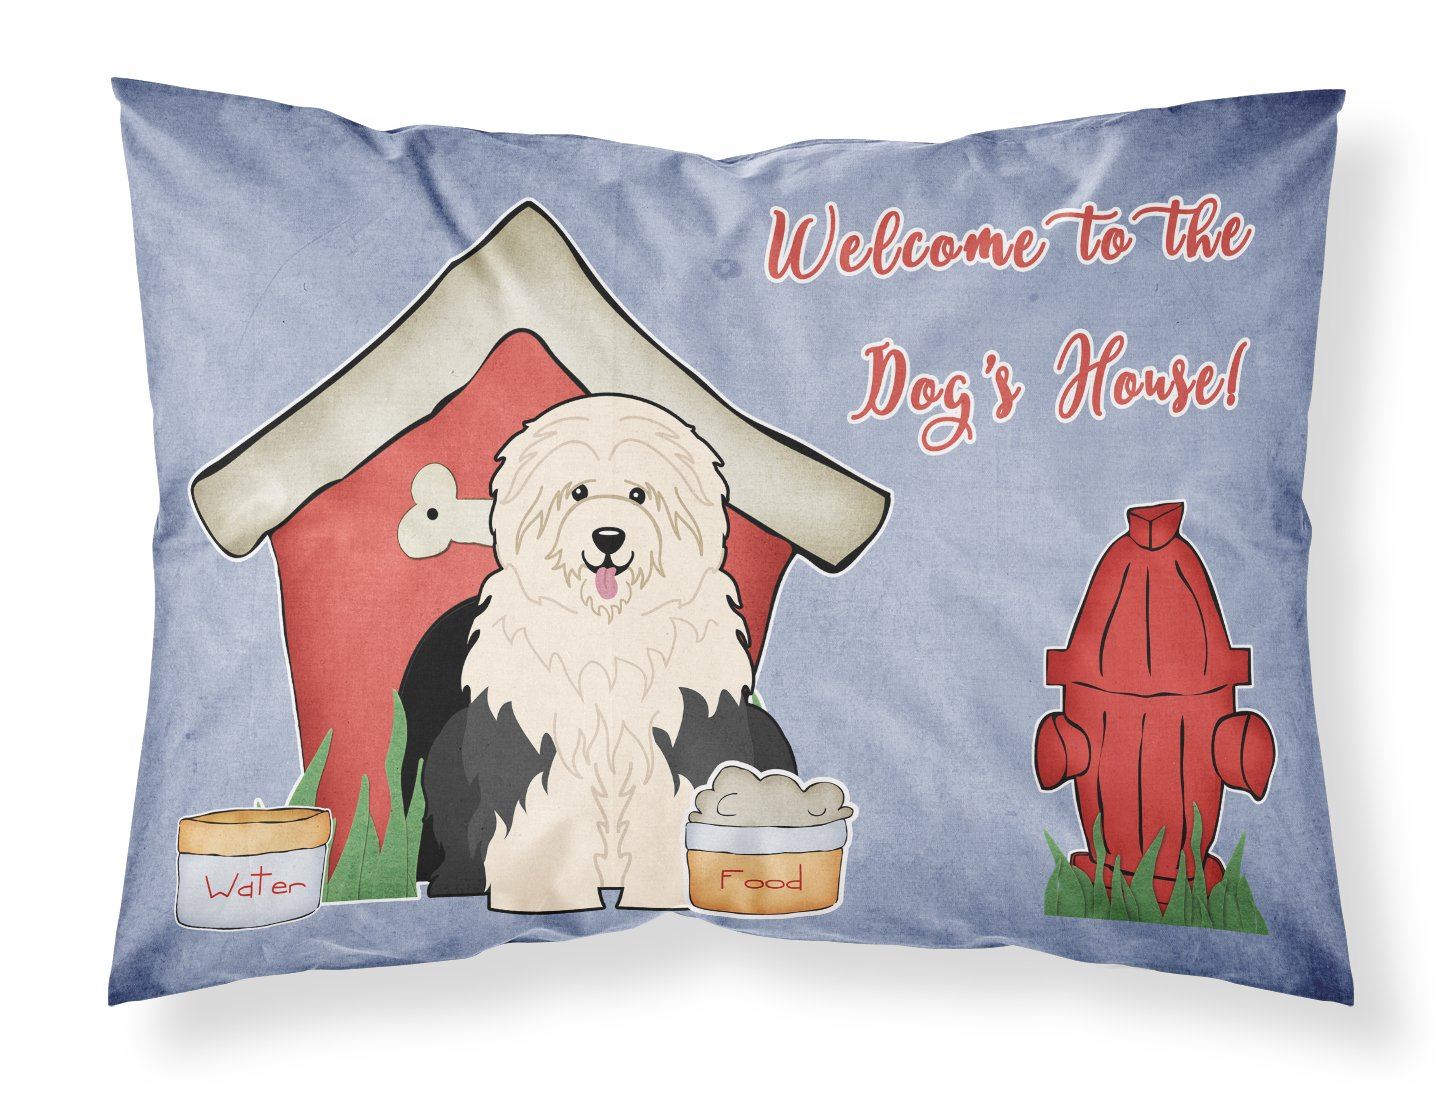 Caroline's Treasures Dog House Collection Old English Sheepdog Fabric Standard Pillowcase BB2850PILLOWCASE Multicolor